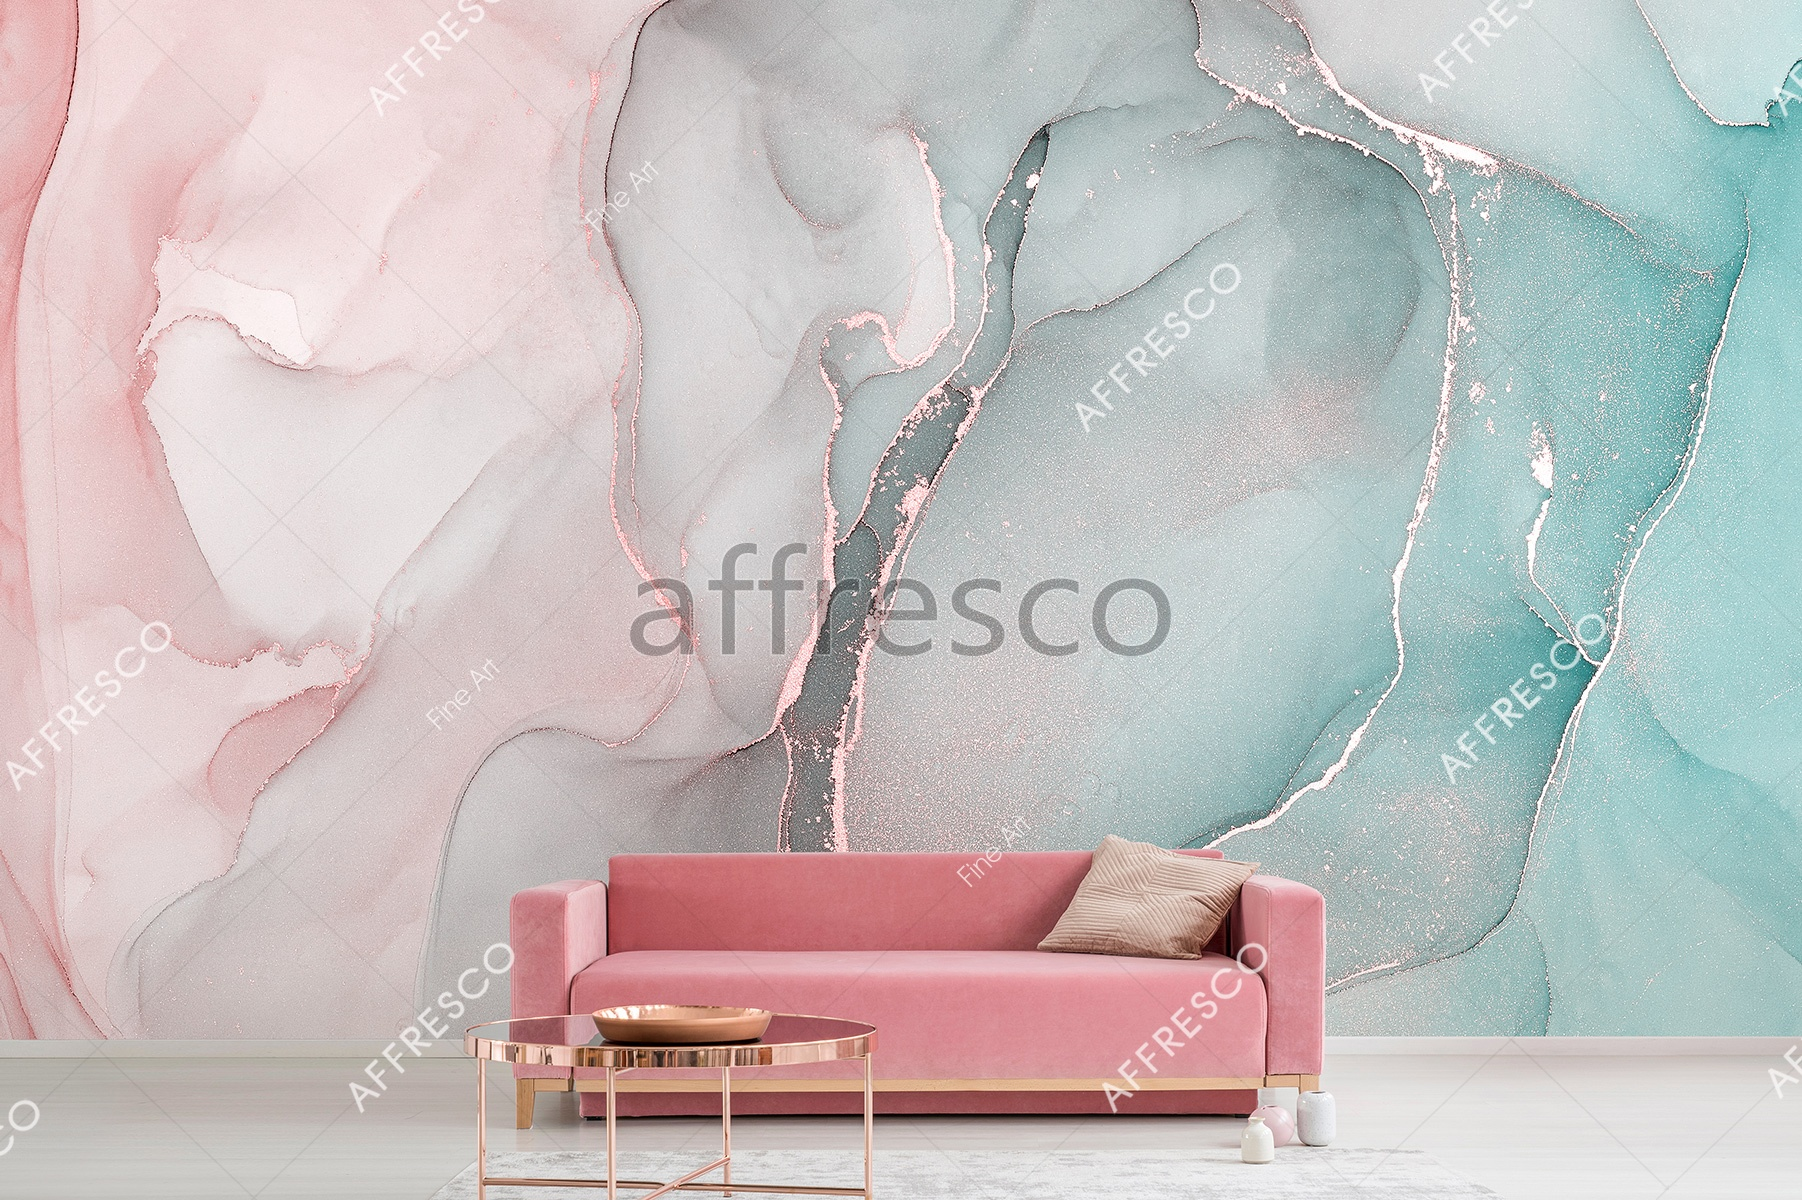 RE845-COL2 | Fine Art | Affresco Factory